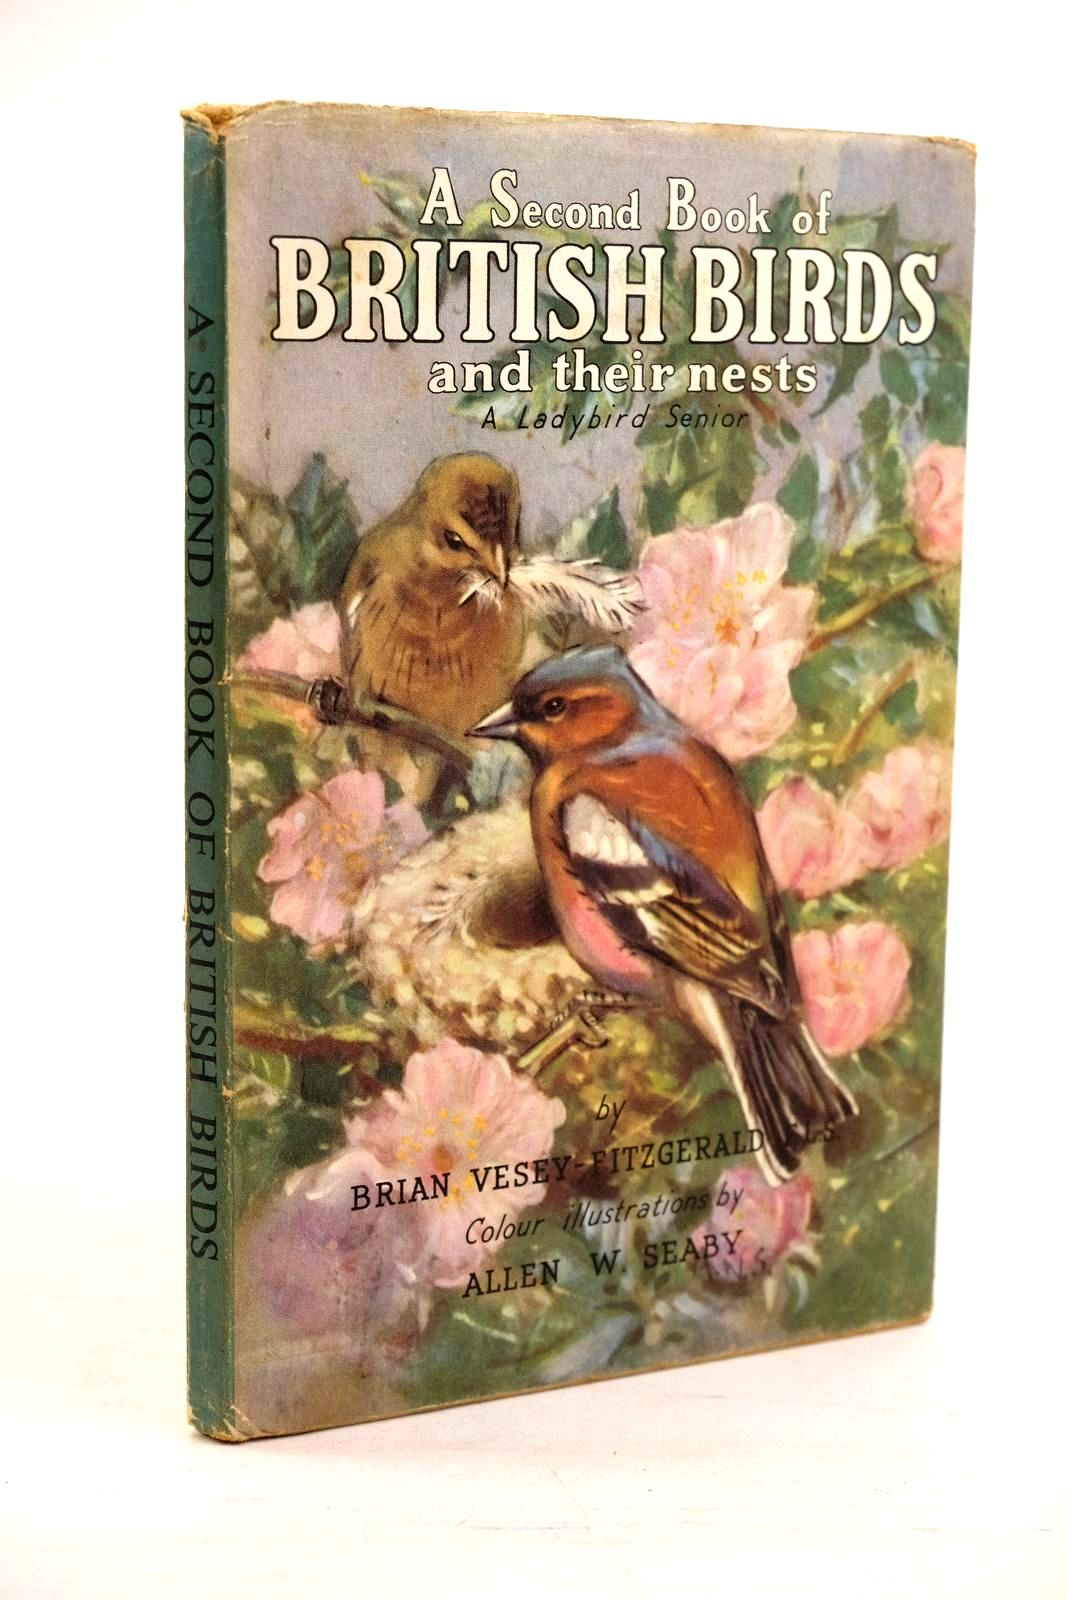 Photo of A SECOND BOOK OF BRITISH BIRDS AND THEIR NESTS- Stock Number: 1320633